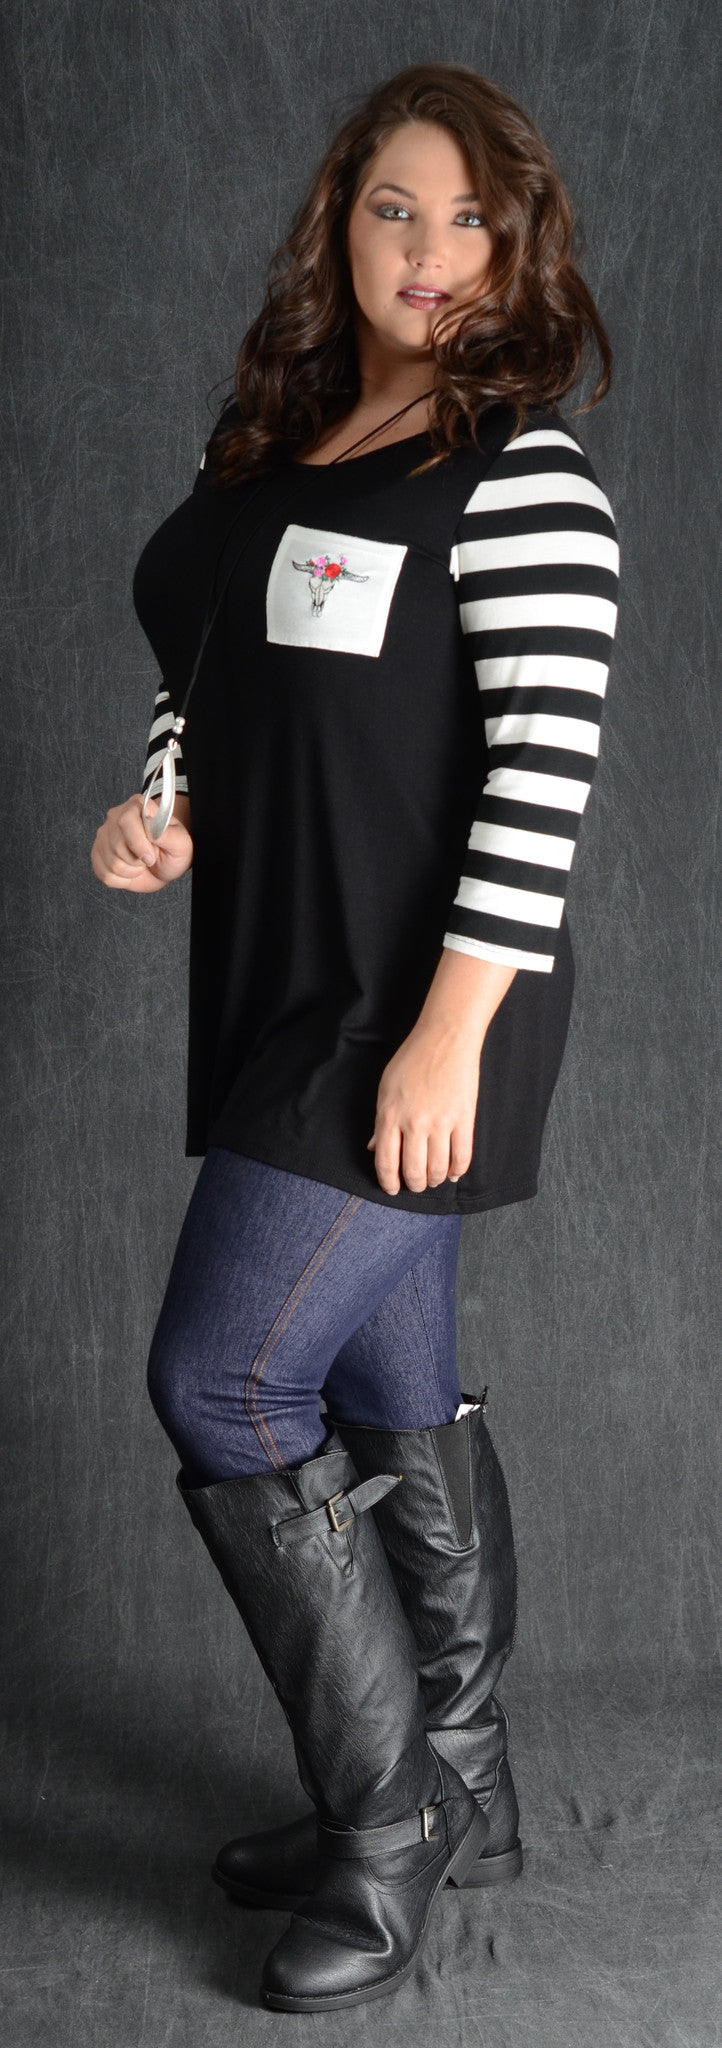 Black & Stripe Bullhead Pocket Top - www.mycurvystore.com - Curvy Boutique